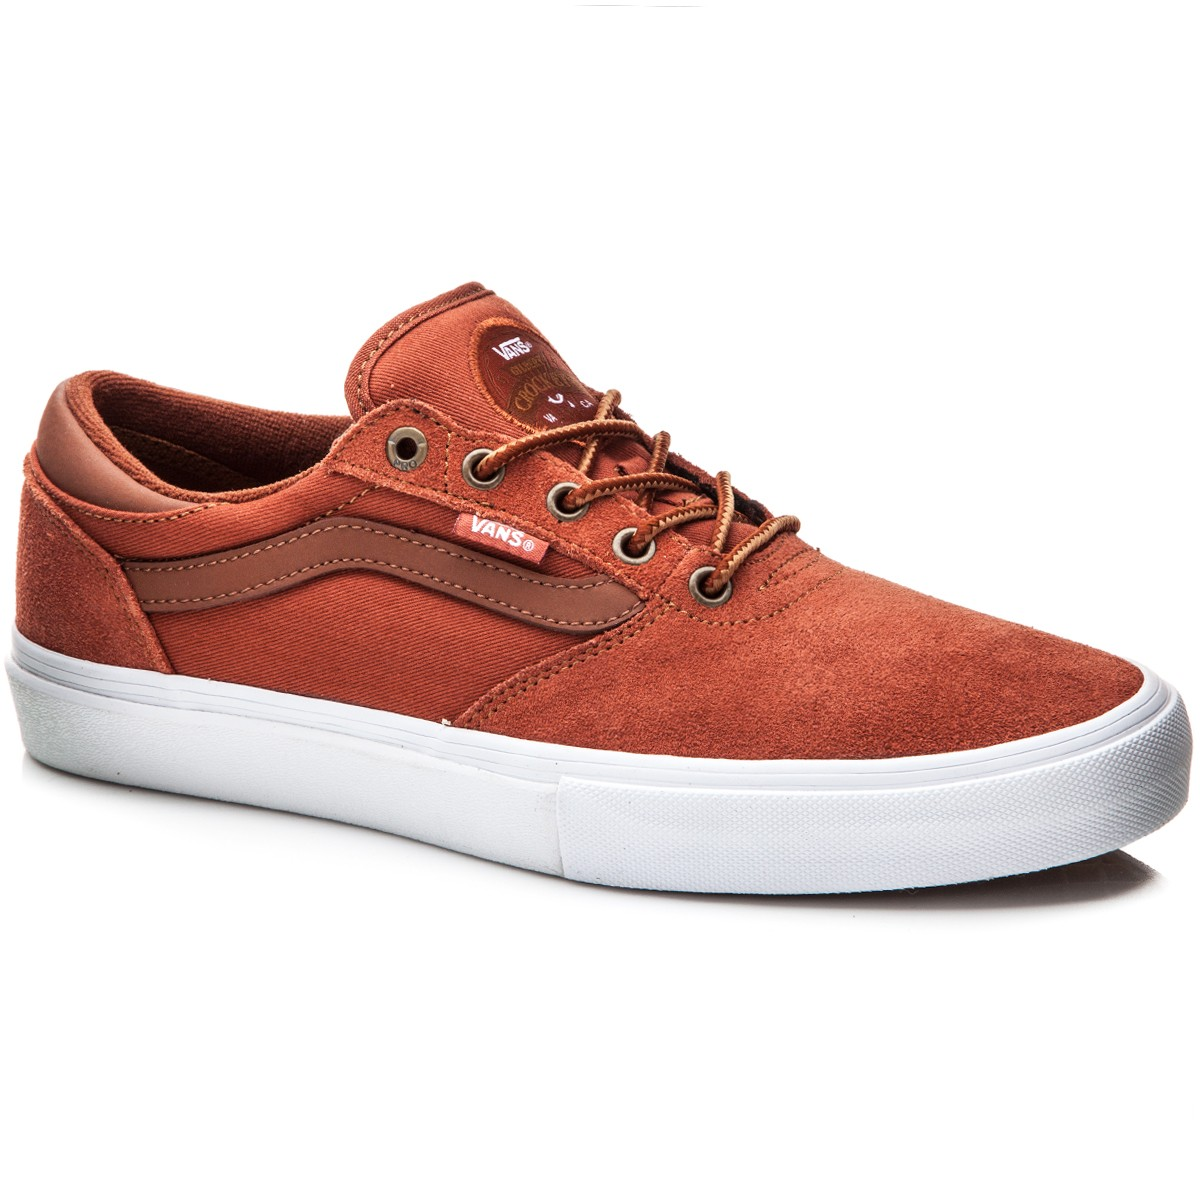 Vans Gilbert Crockett Pro Shoes - Auburn/White - 10.0